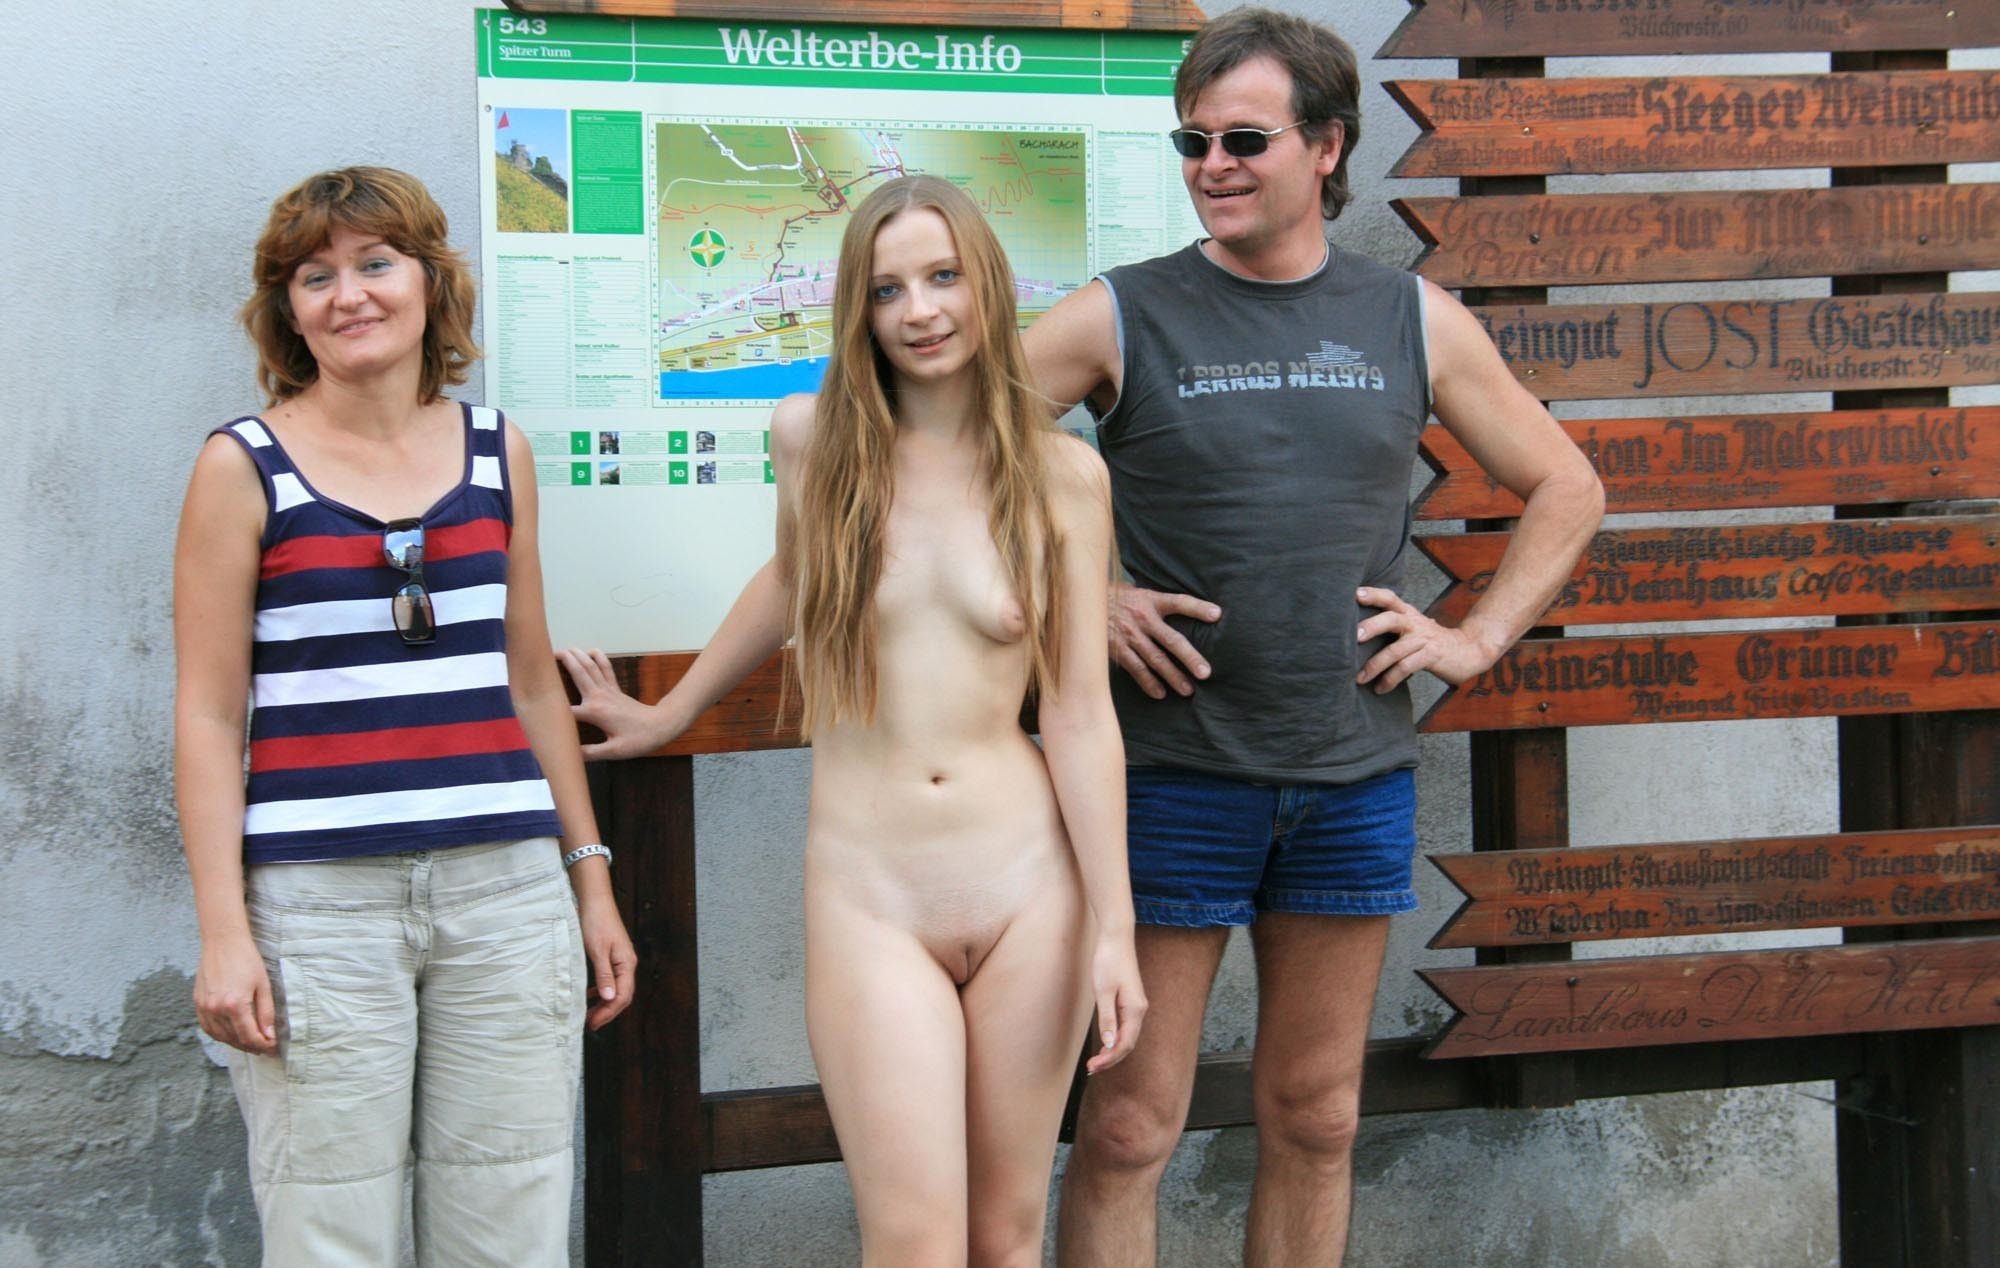 young nudist girls in bodypaint